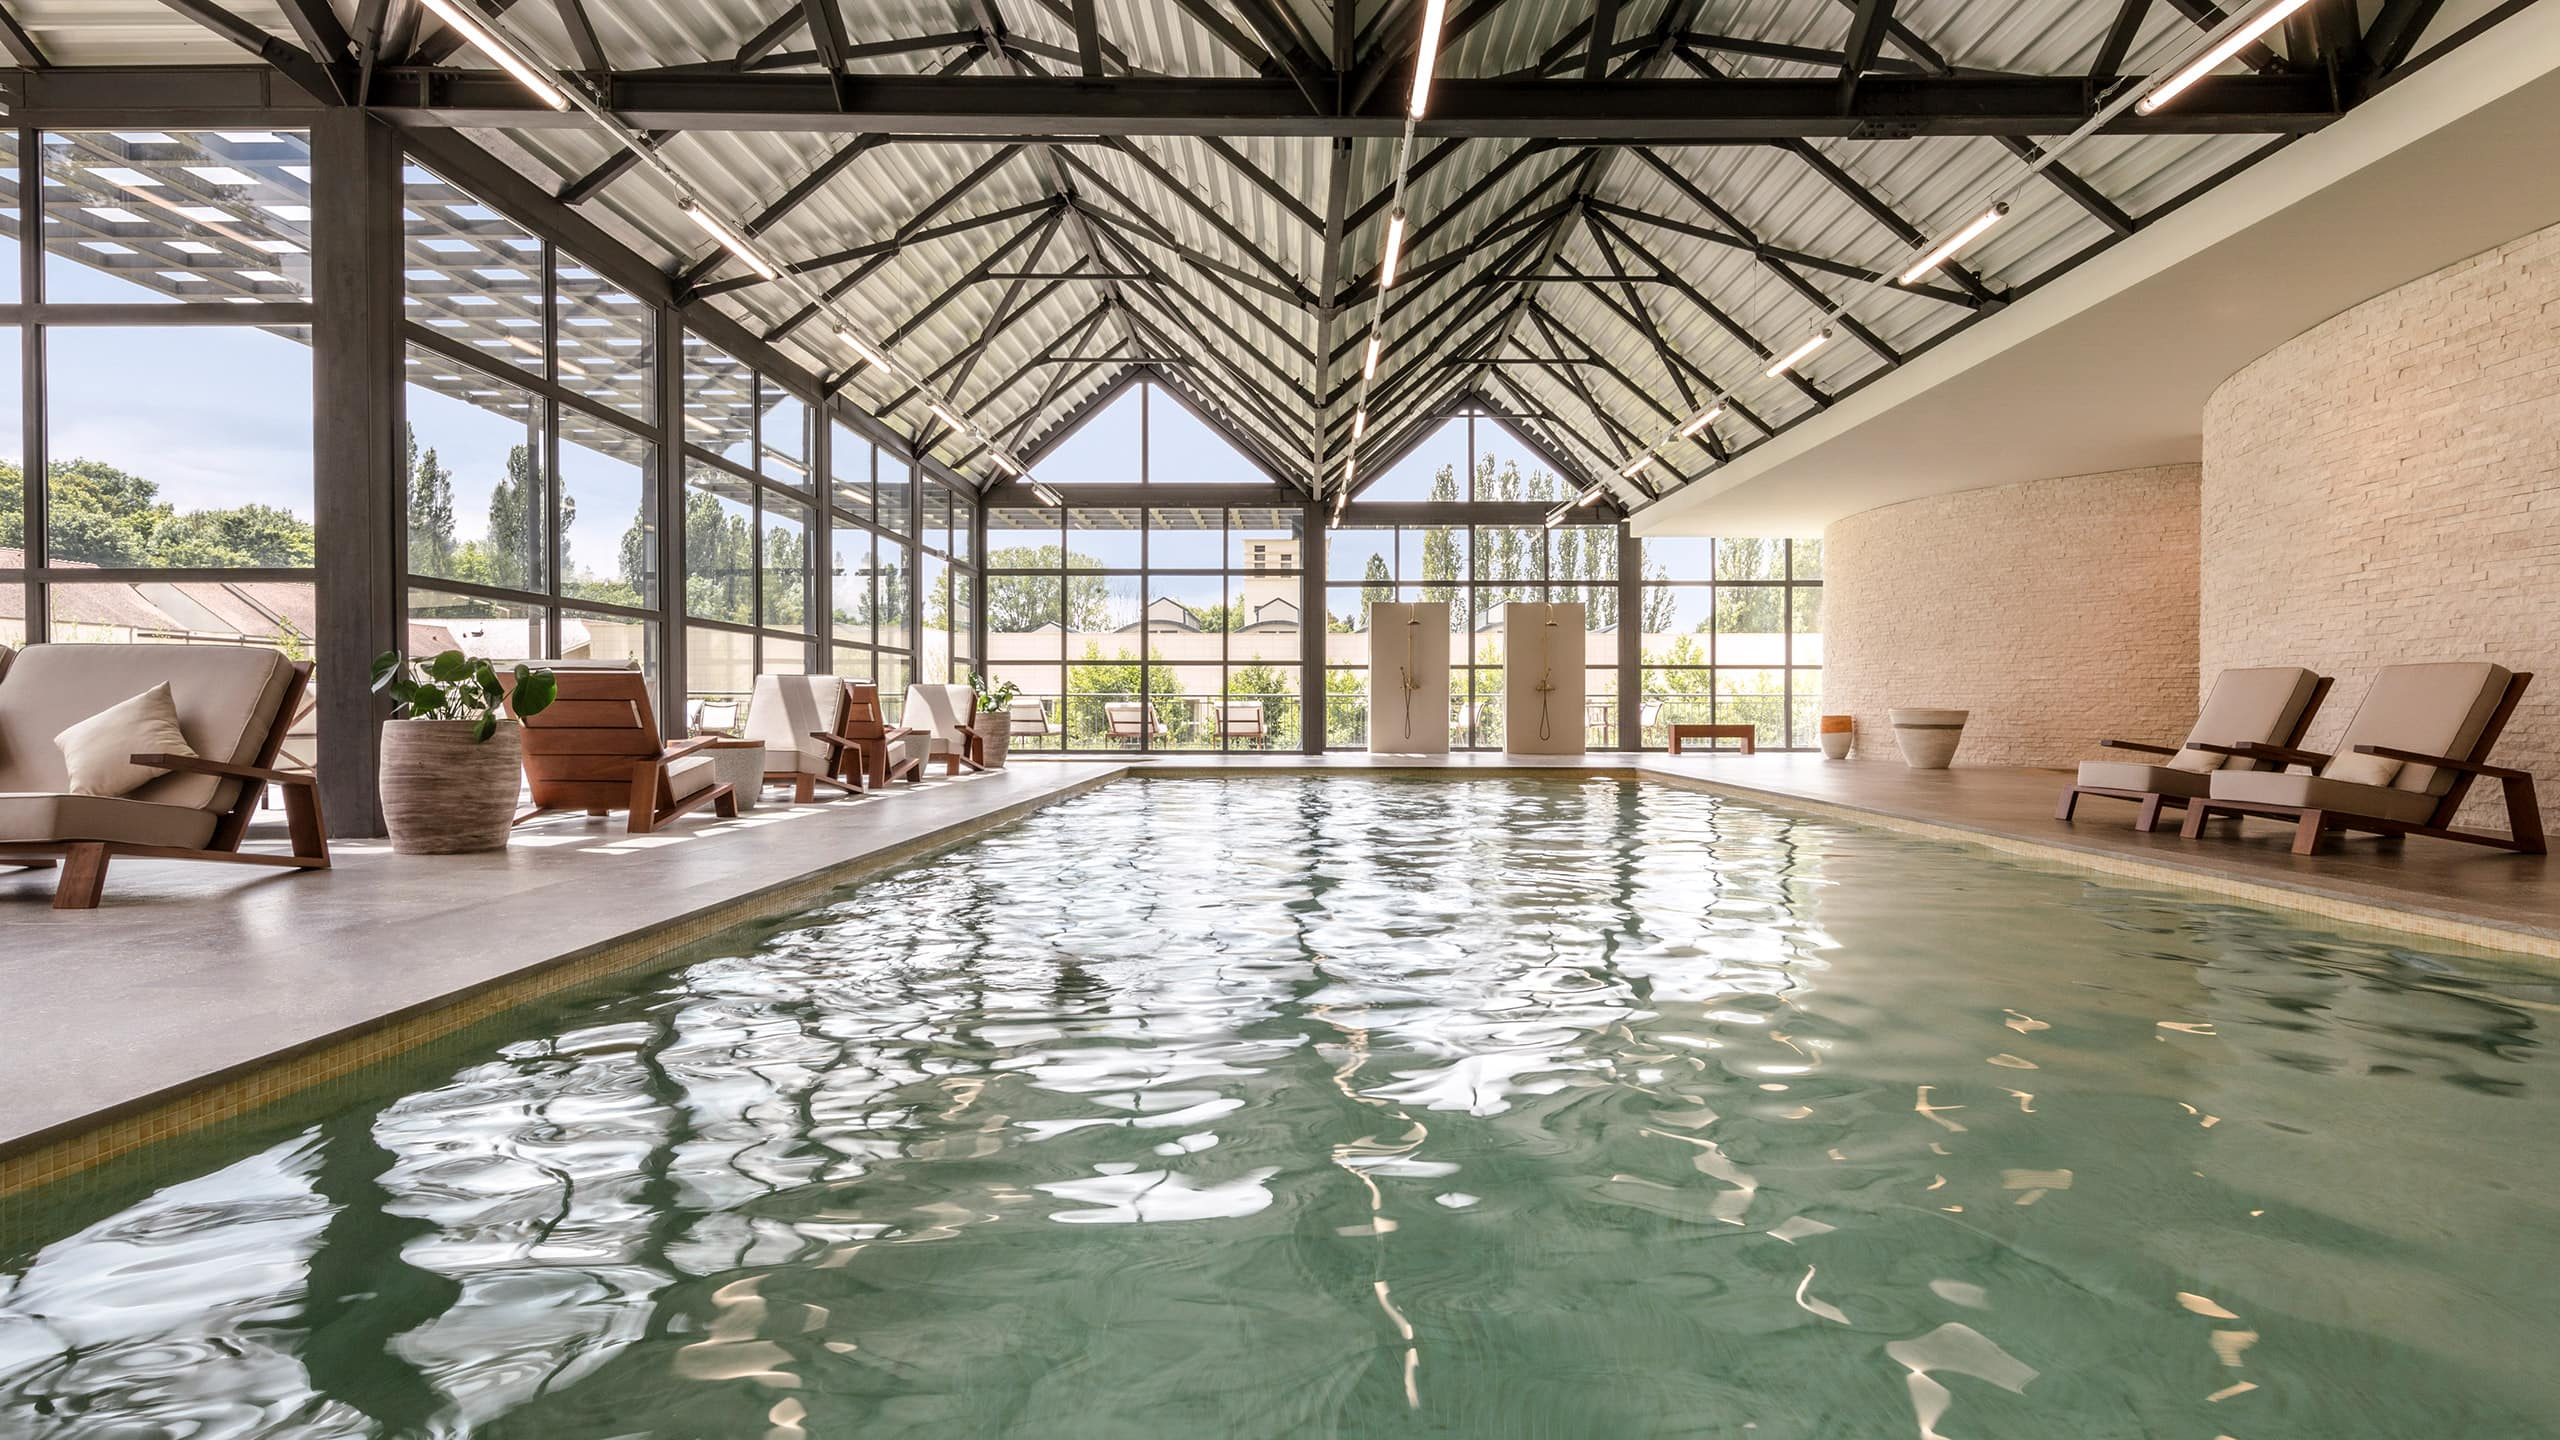 Swimming Pool at Hyatt Regency Chantilly - Le Cottage Spa & Wellness